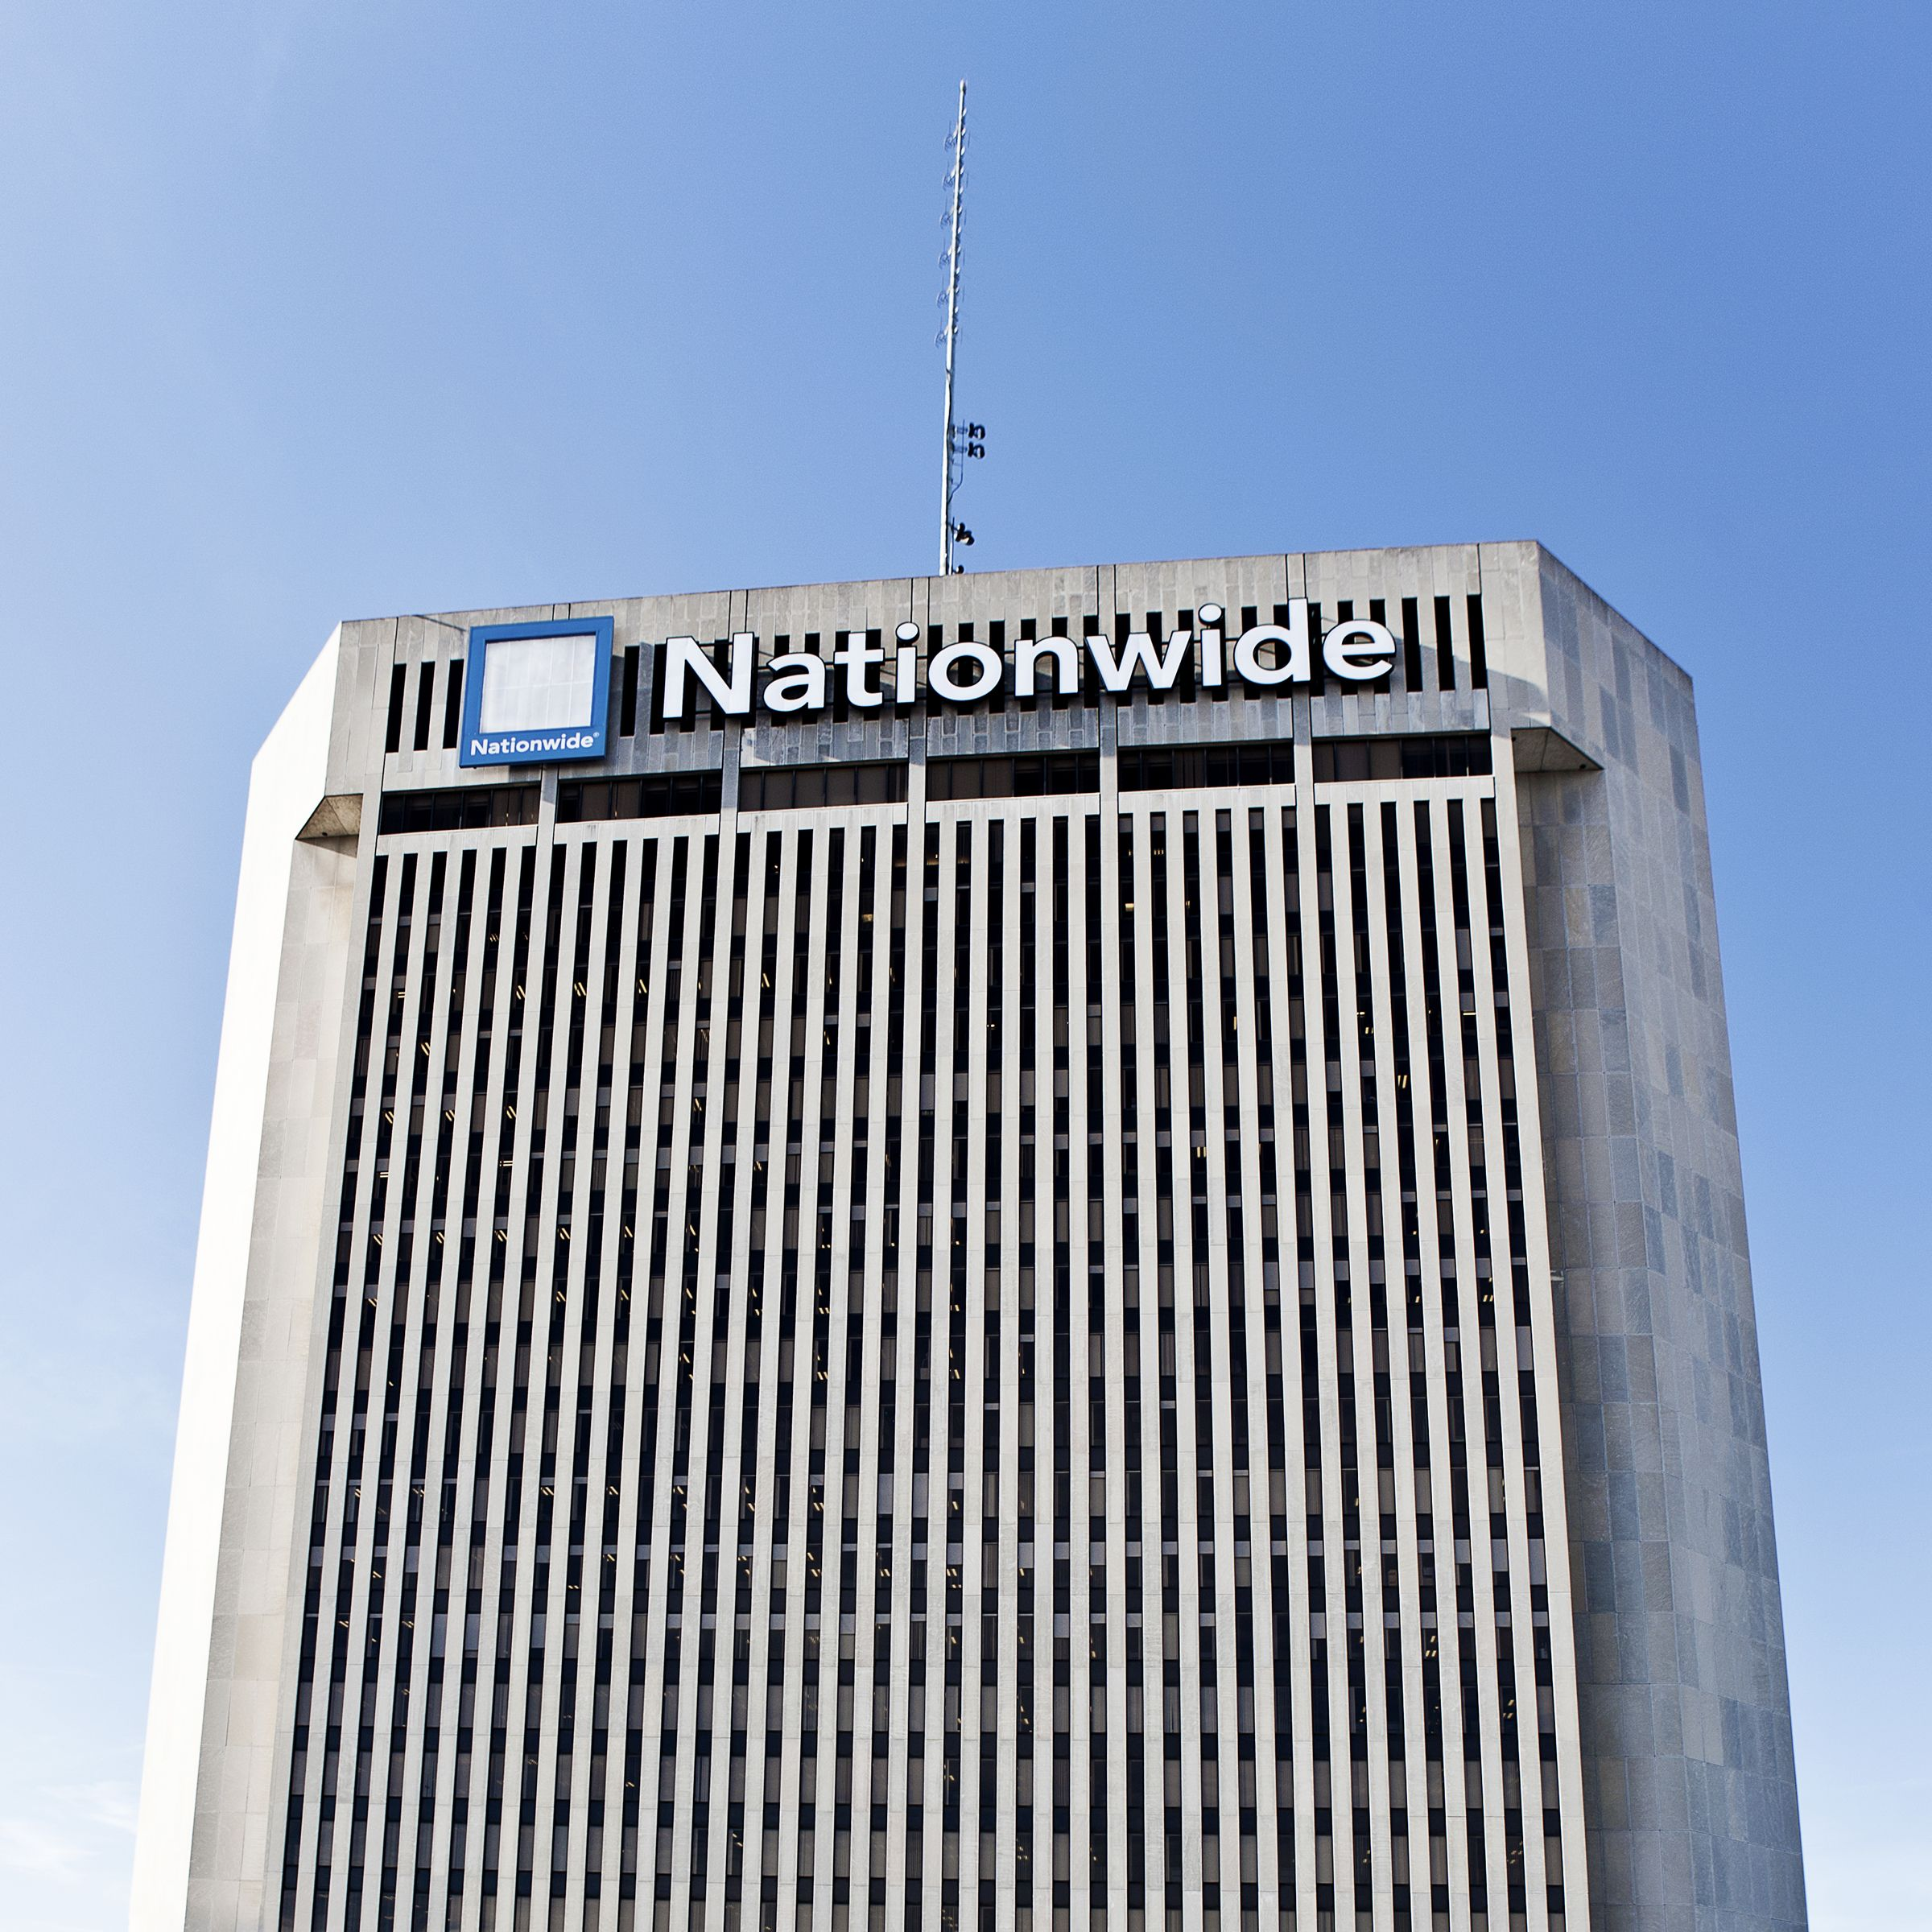 The Nationwide Insurance World Headquarters In Downtown